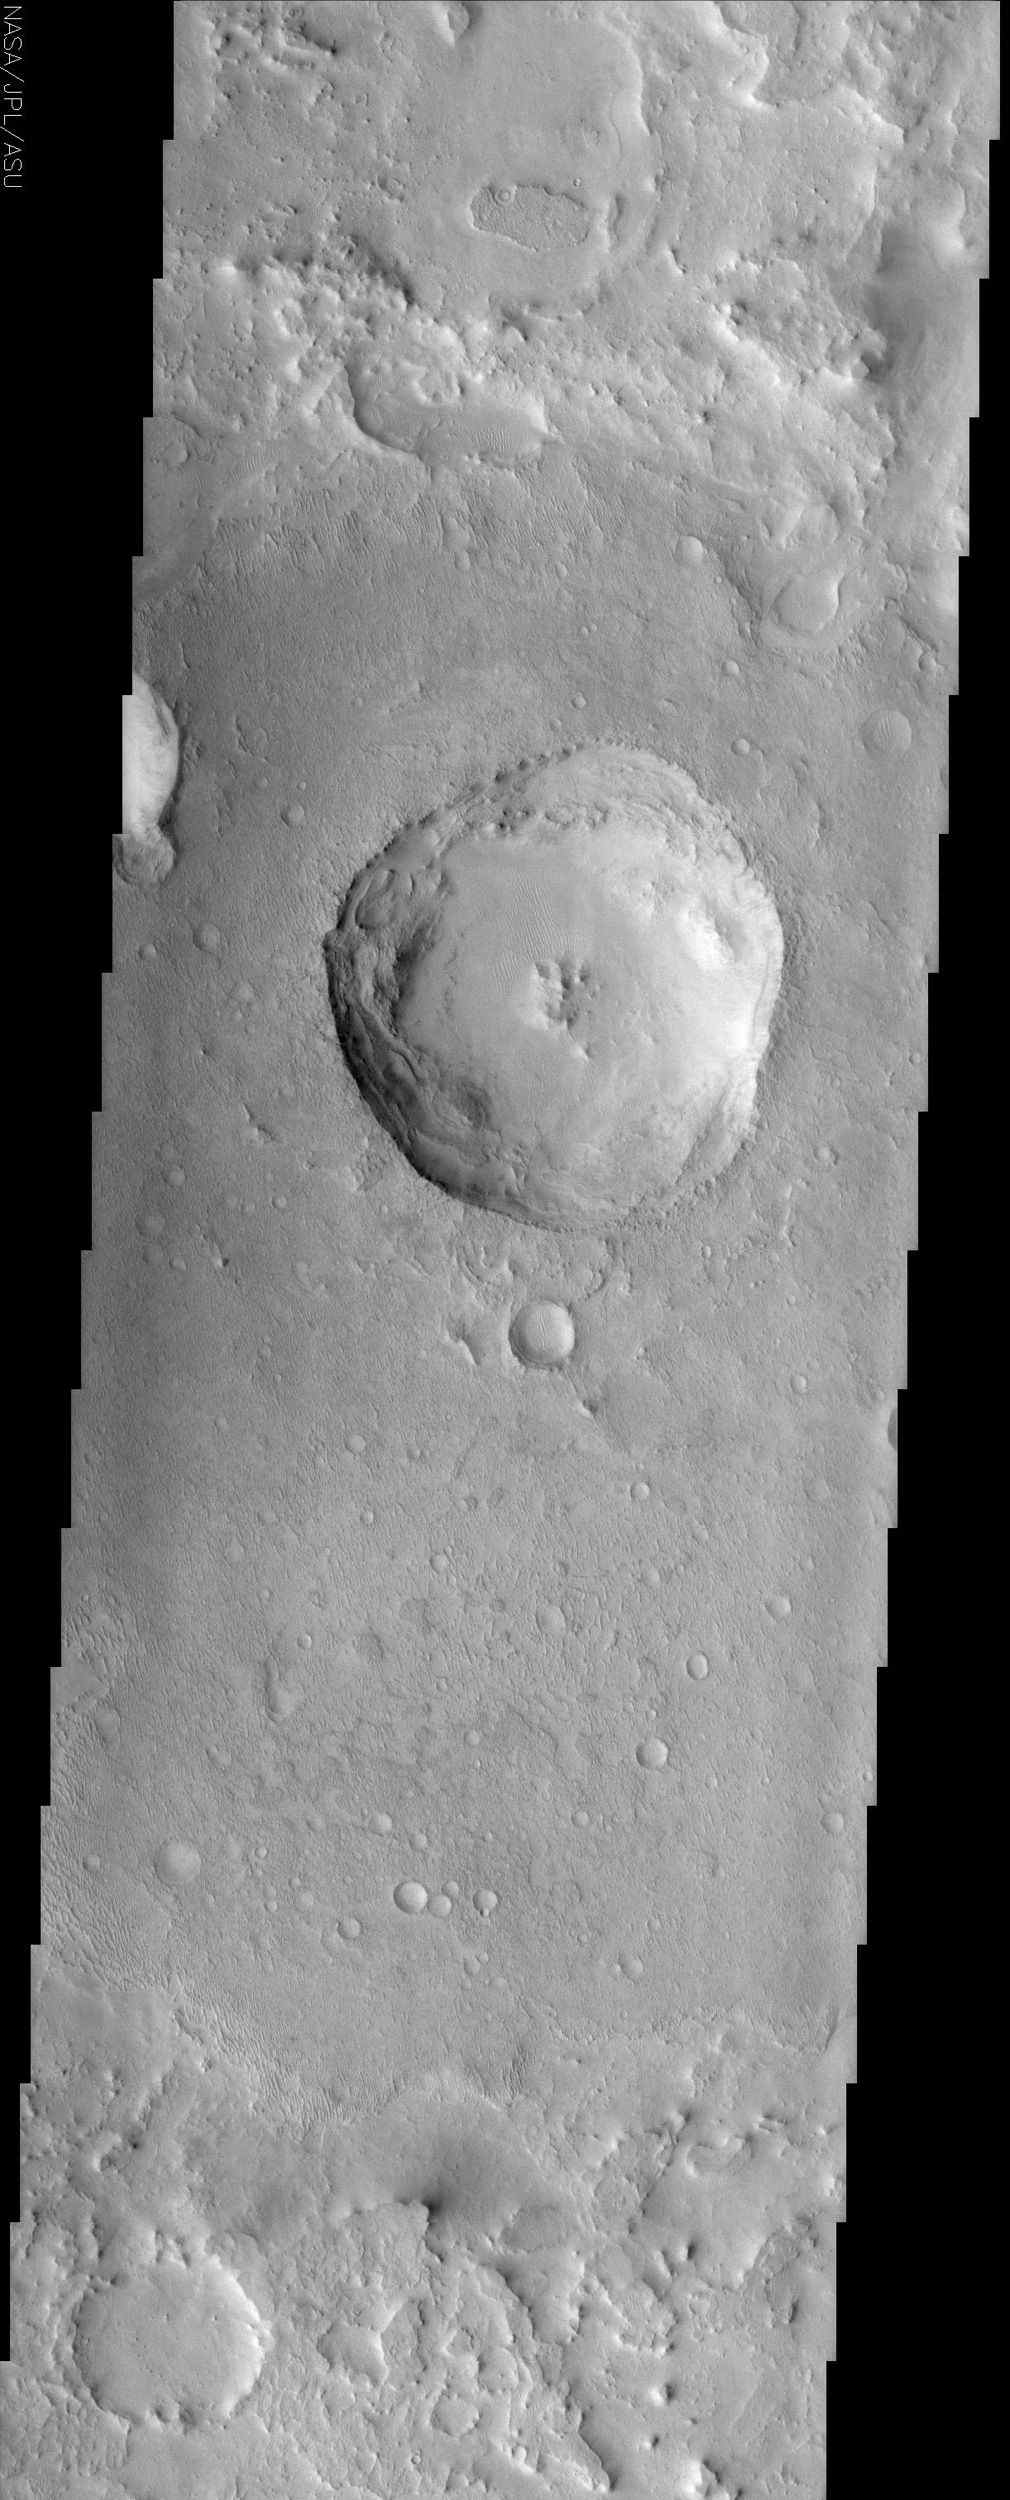 Many places on Mars, such as in this image from NASA's Mars Odyssey spacecraft of a crater superposed on the floor of a larger crater, display scabby, eroded landscapes that commonly are referred to as etched terrain.